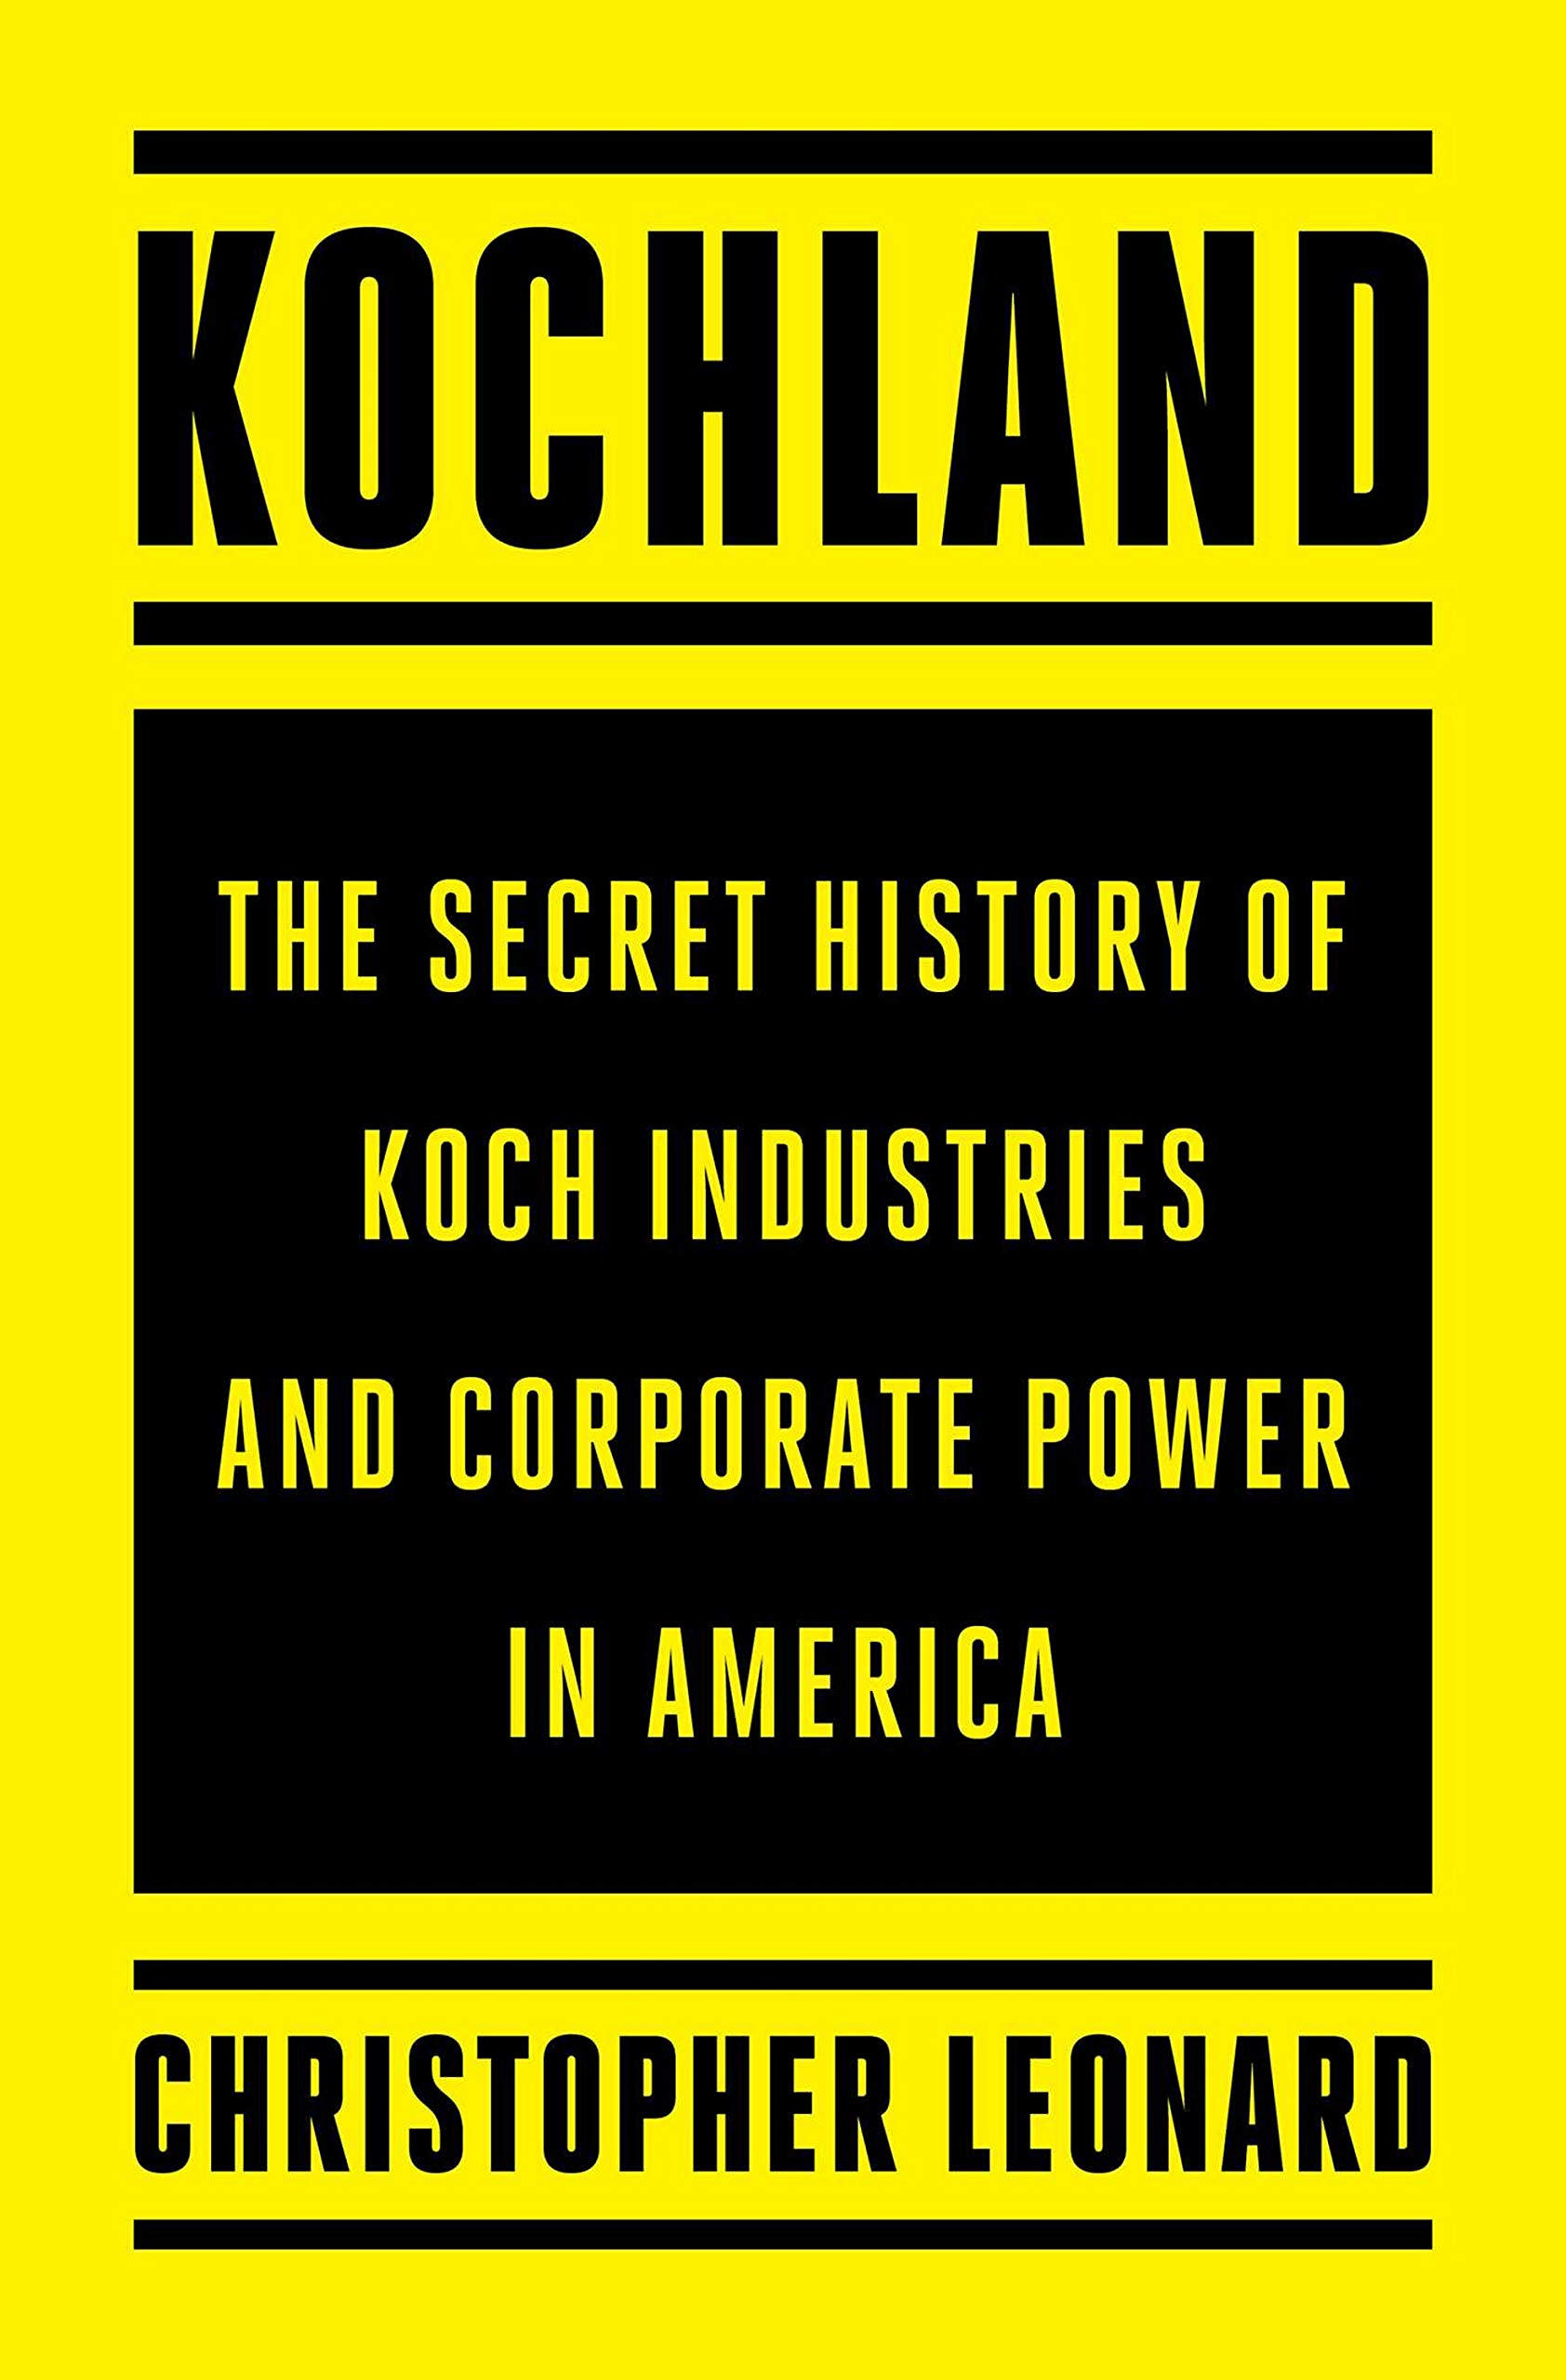 Buy Kochland Book Online at Low Prices in India | Kochland